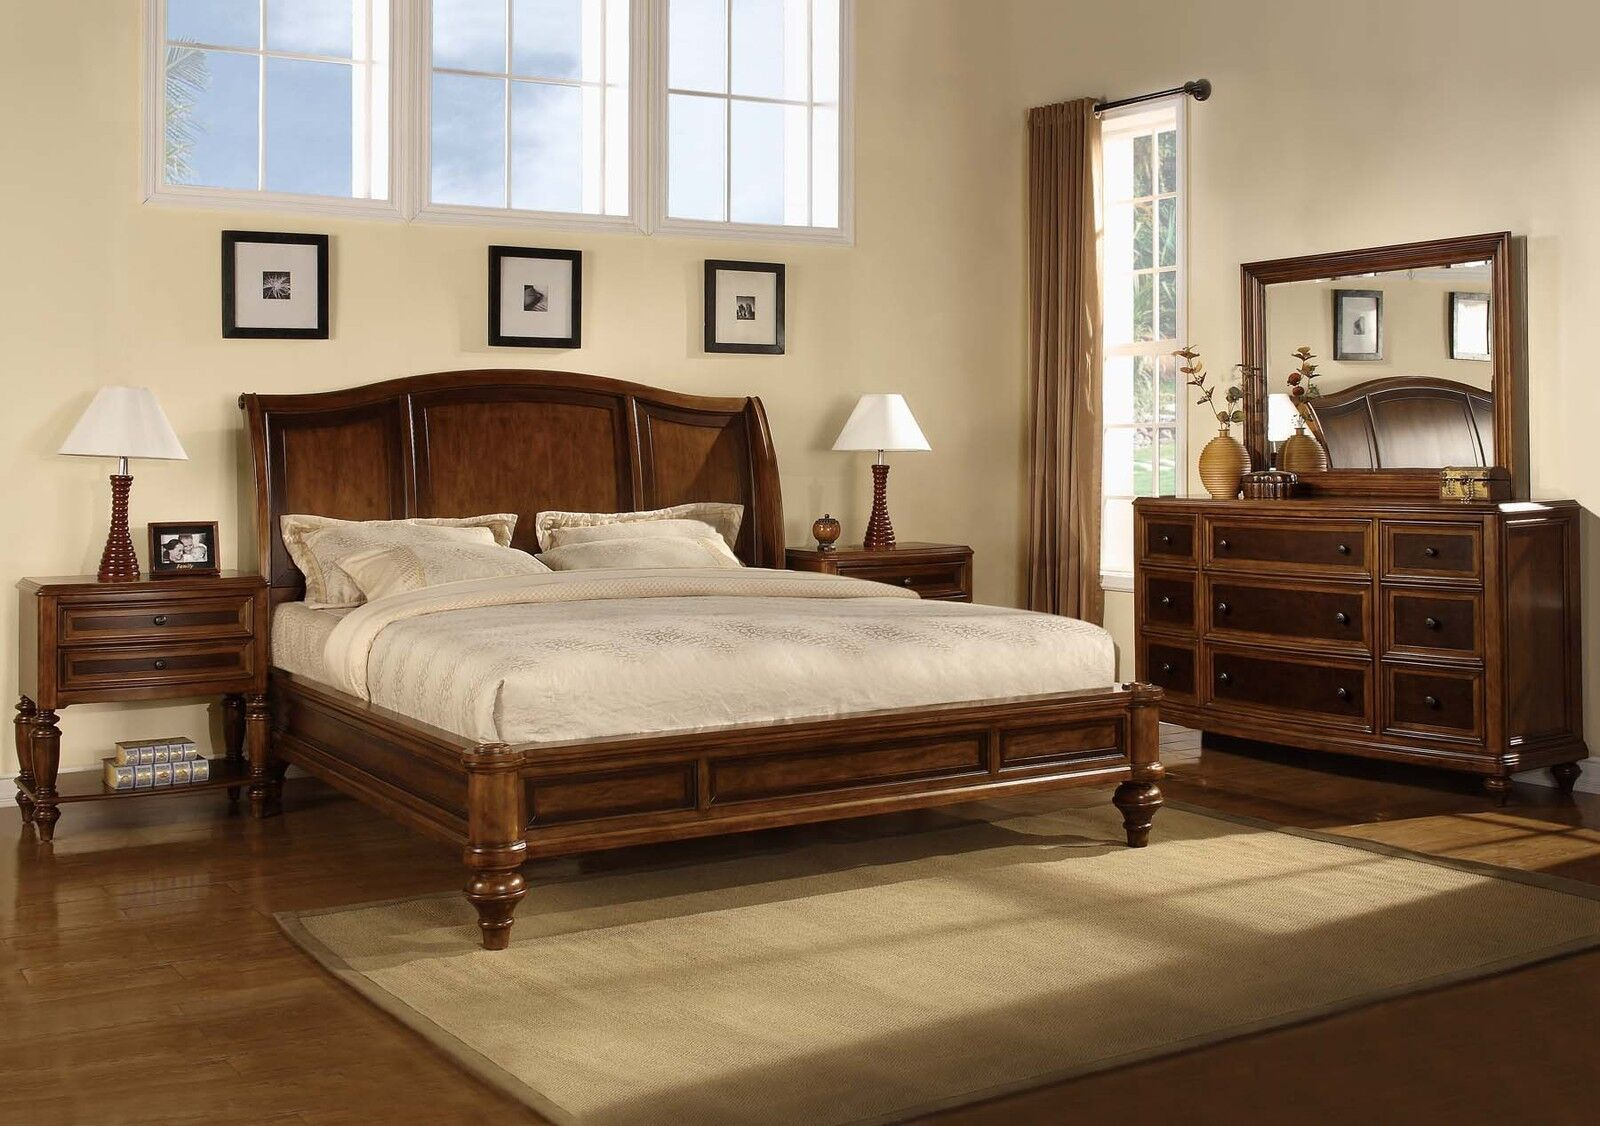 King Size Sleigh Bed Bedroom Sets 1600 x 1126